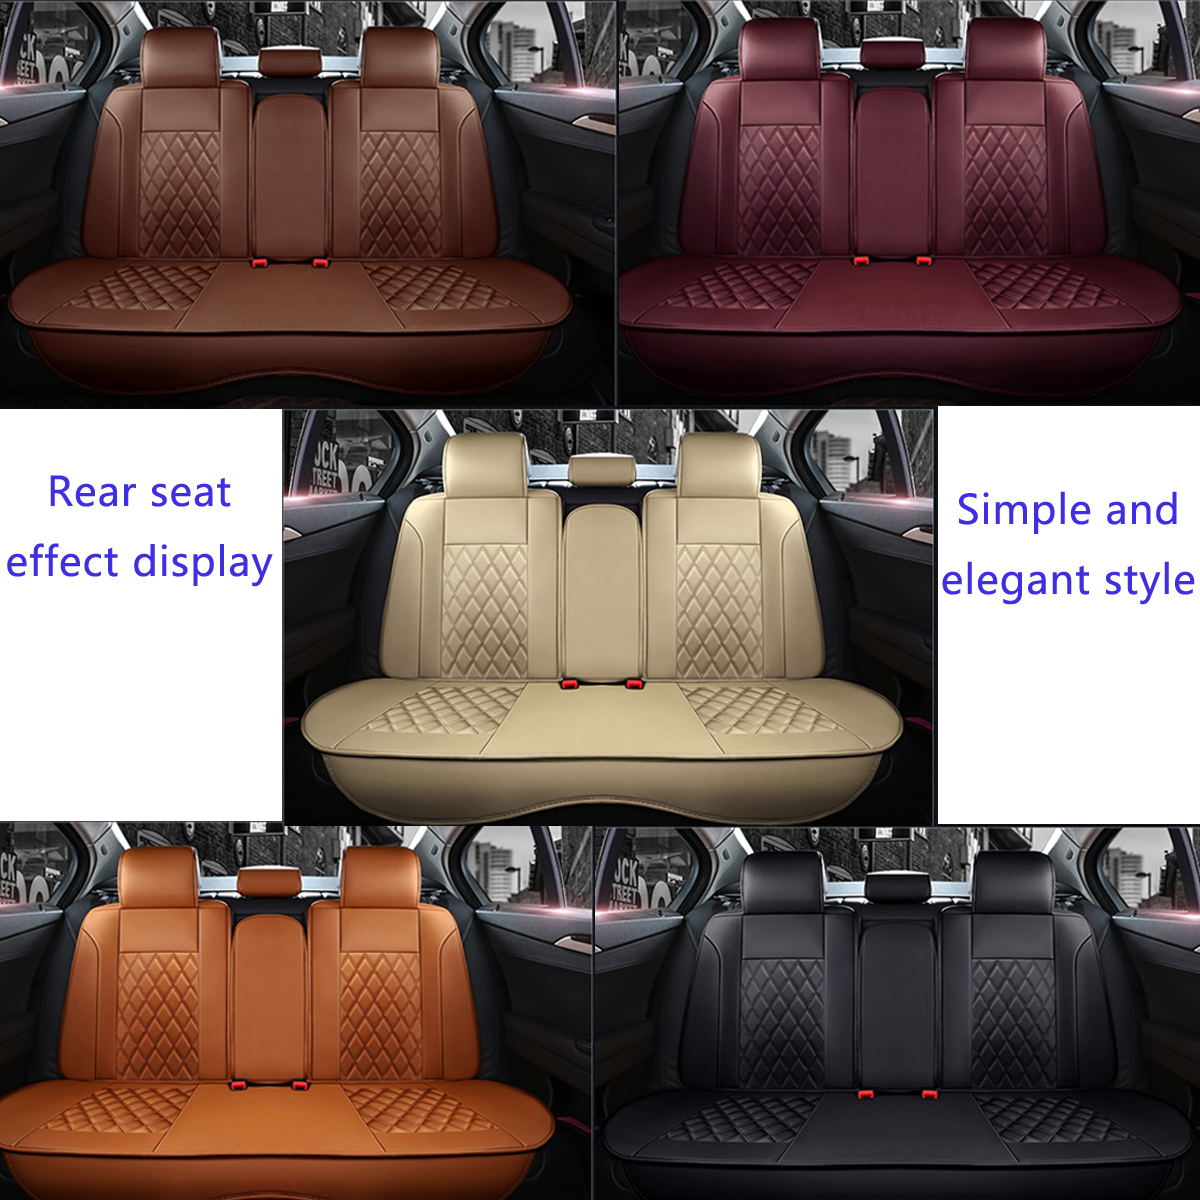 Leather Car Full Surround Seat Cover Cushion Protector Set Universal for 5 Seats Car Two Style